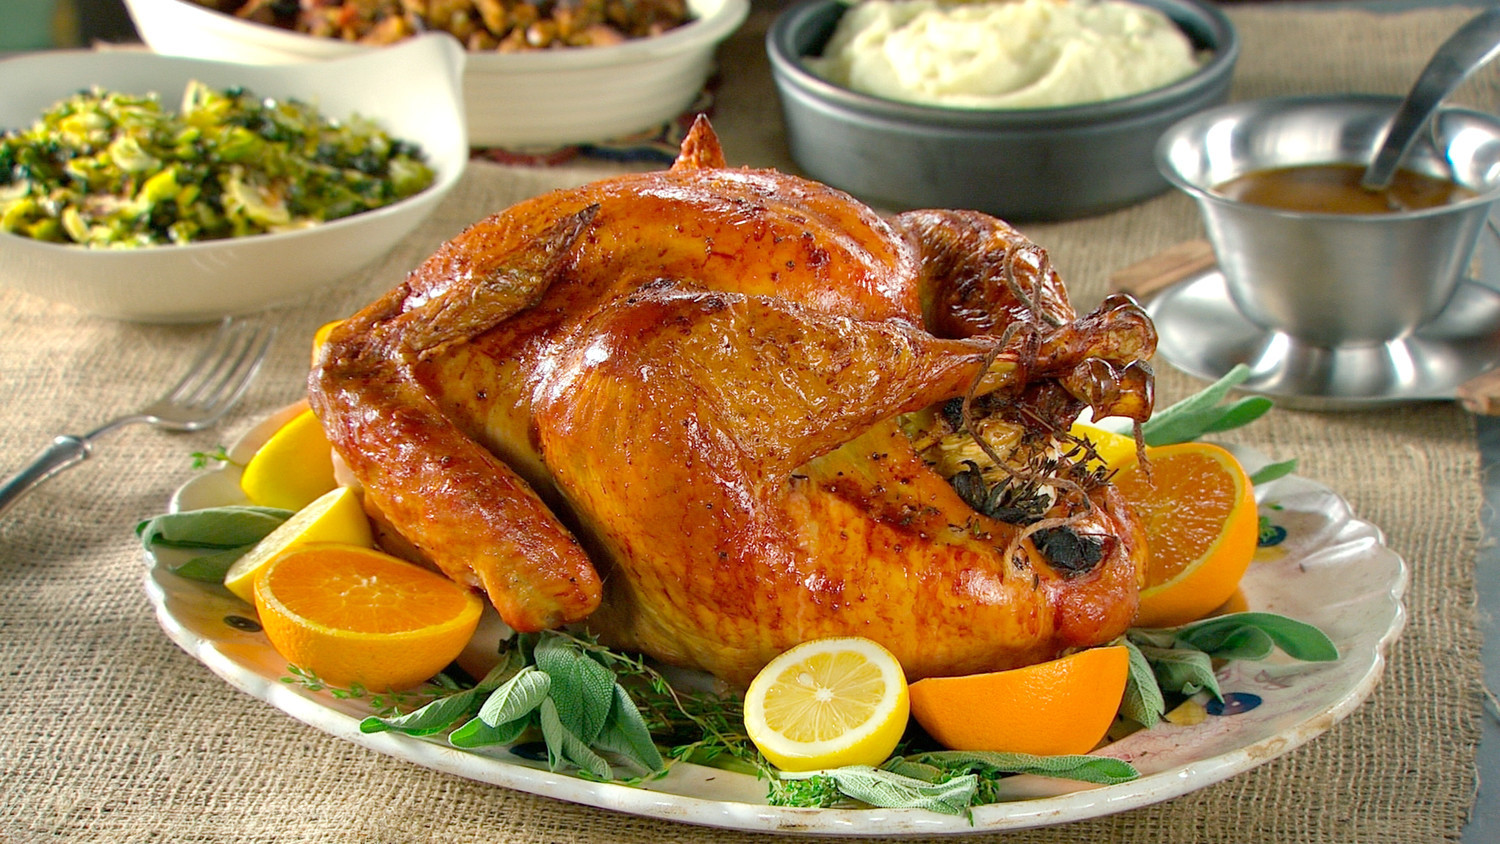 Whole Foods Thanksgiving Dinner Review  Citrus and Herb Turkey Recipe